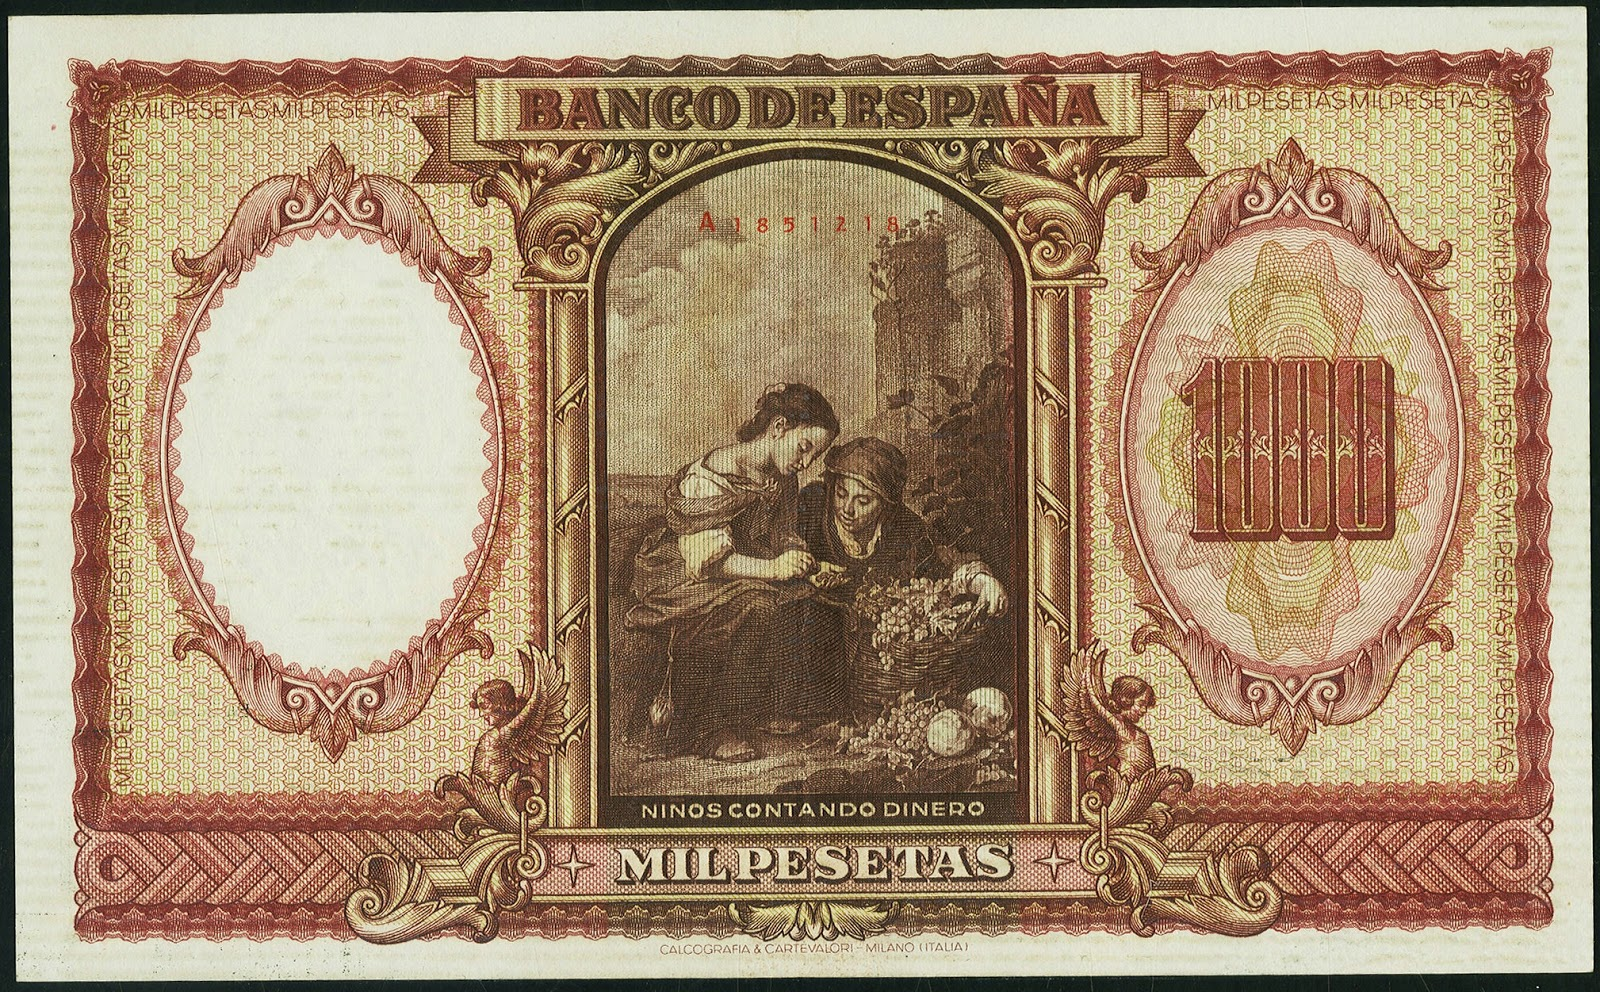 Spain Currency 1000 Pesetas banknote 1940 Children Counting Money by Bartolome Esteban Murillo